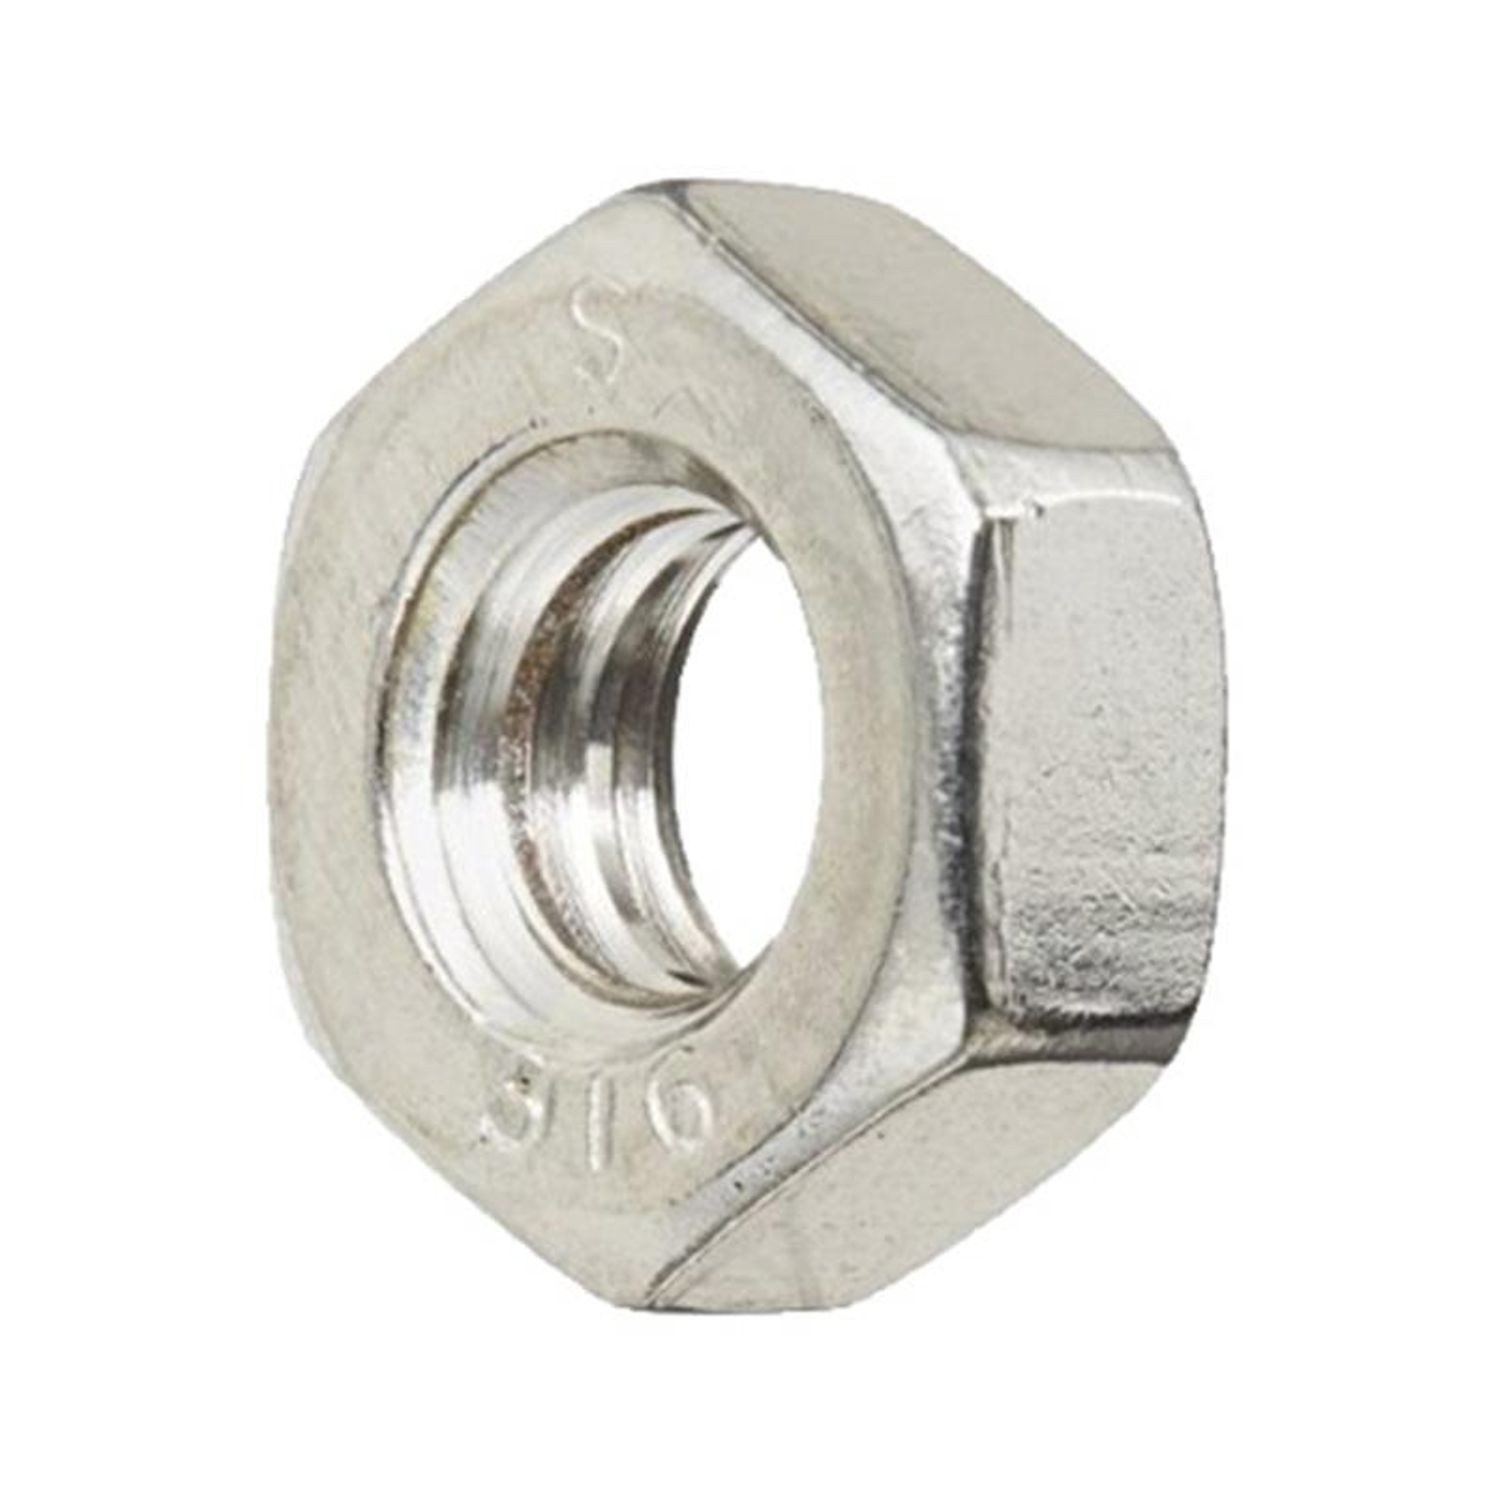 #10-32 Stainless Steel Machine Screw Nut 316